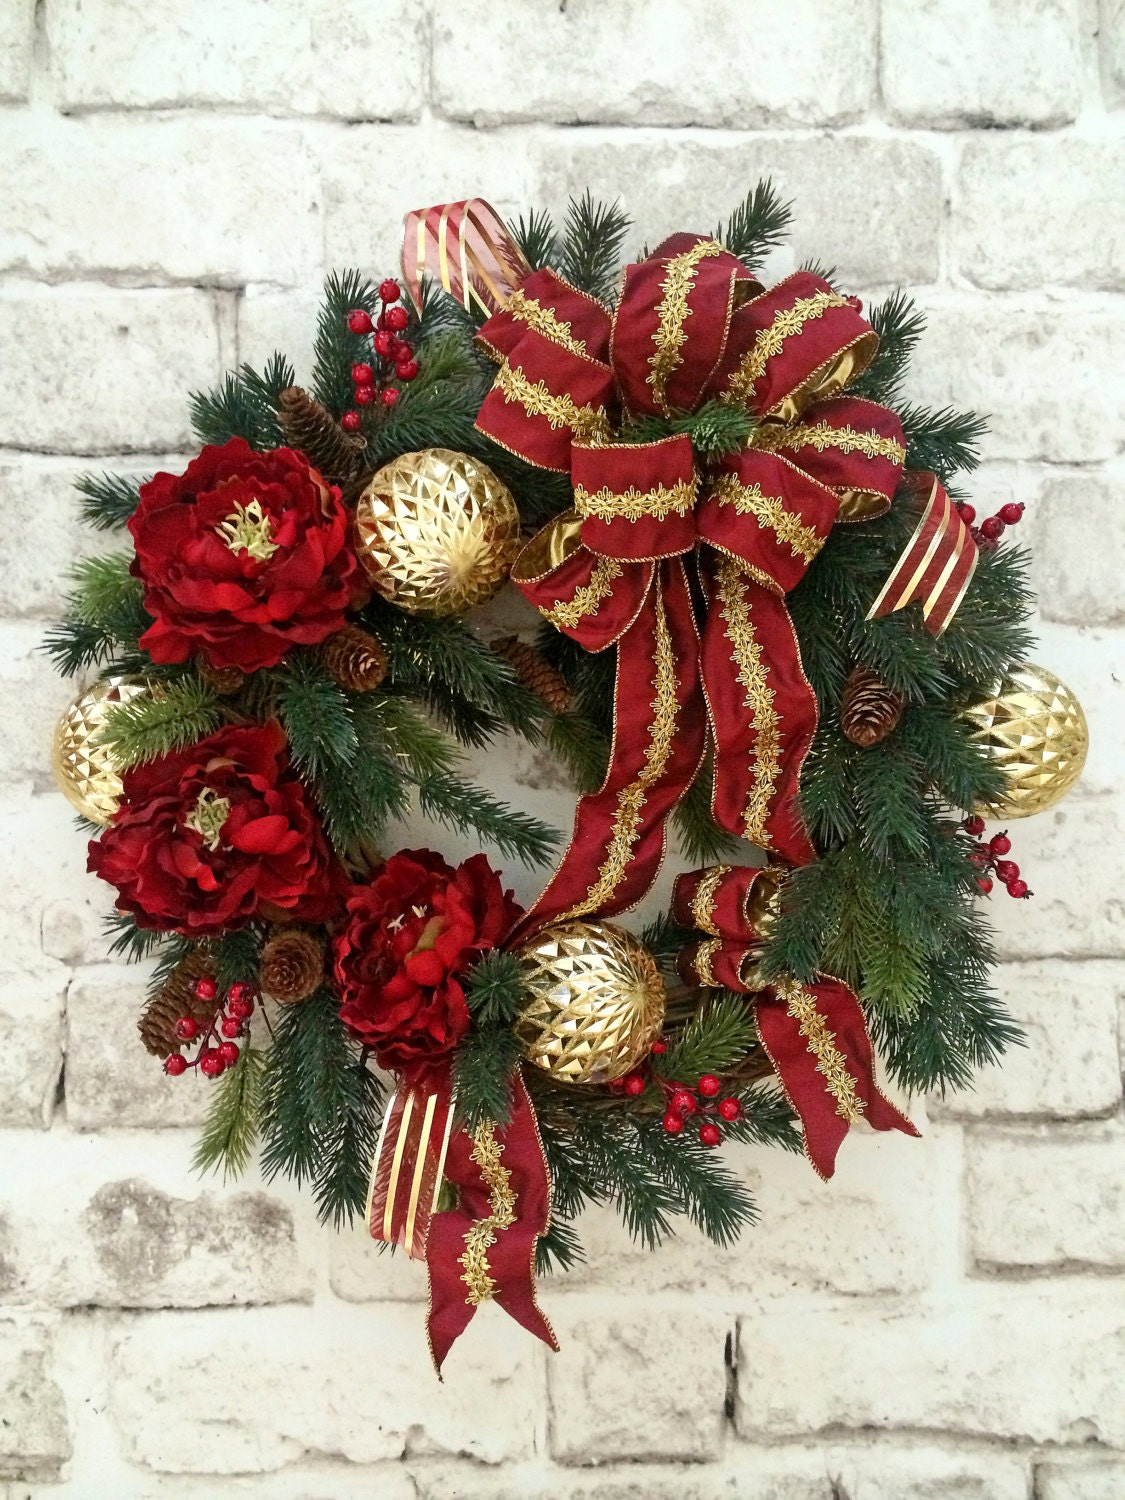 Christmas Wreath Holiday Wreath Christmas Decor Outdoor